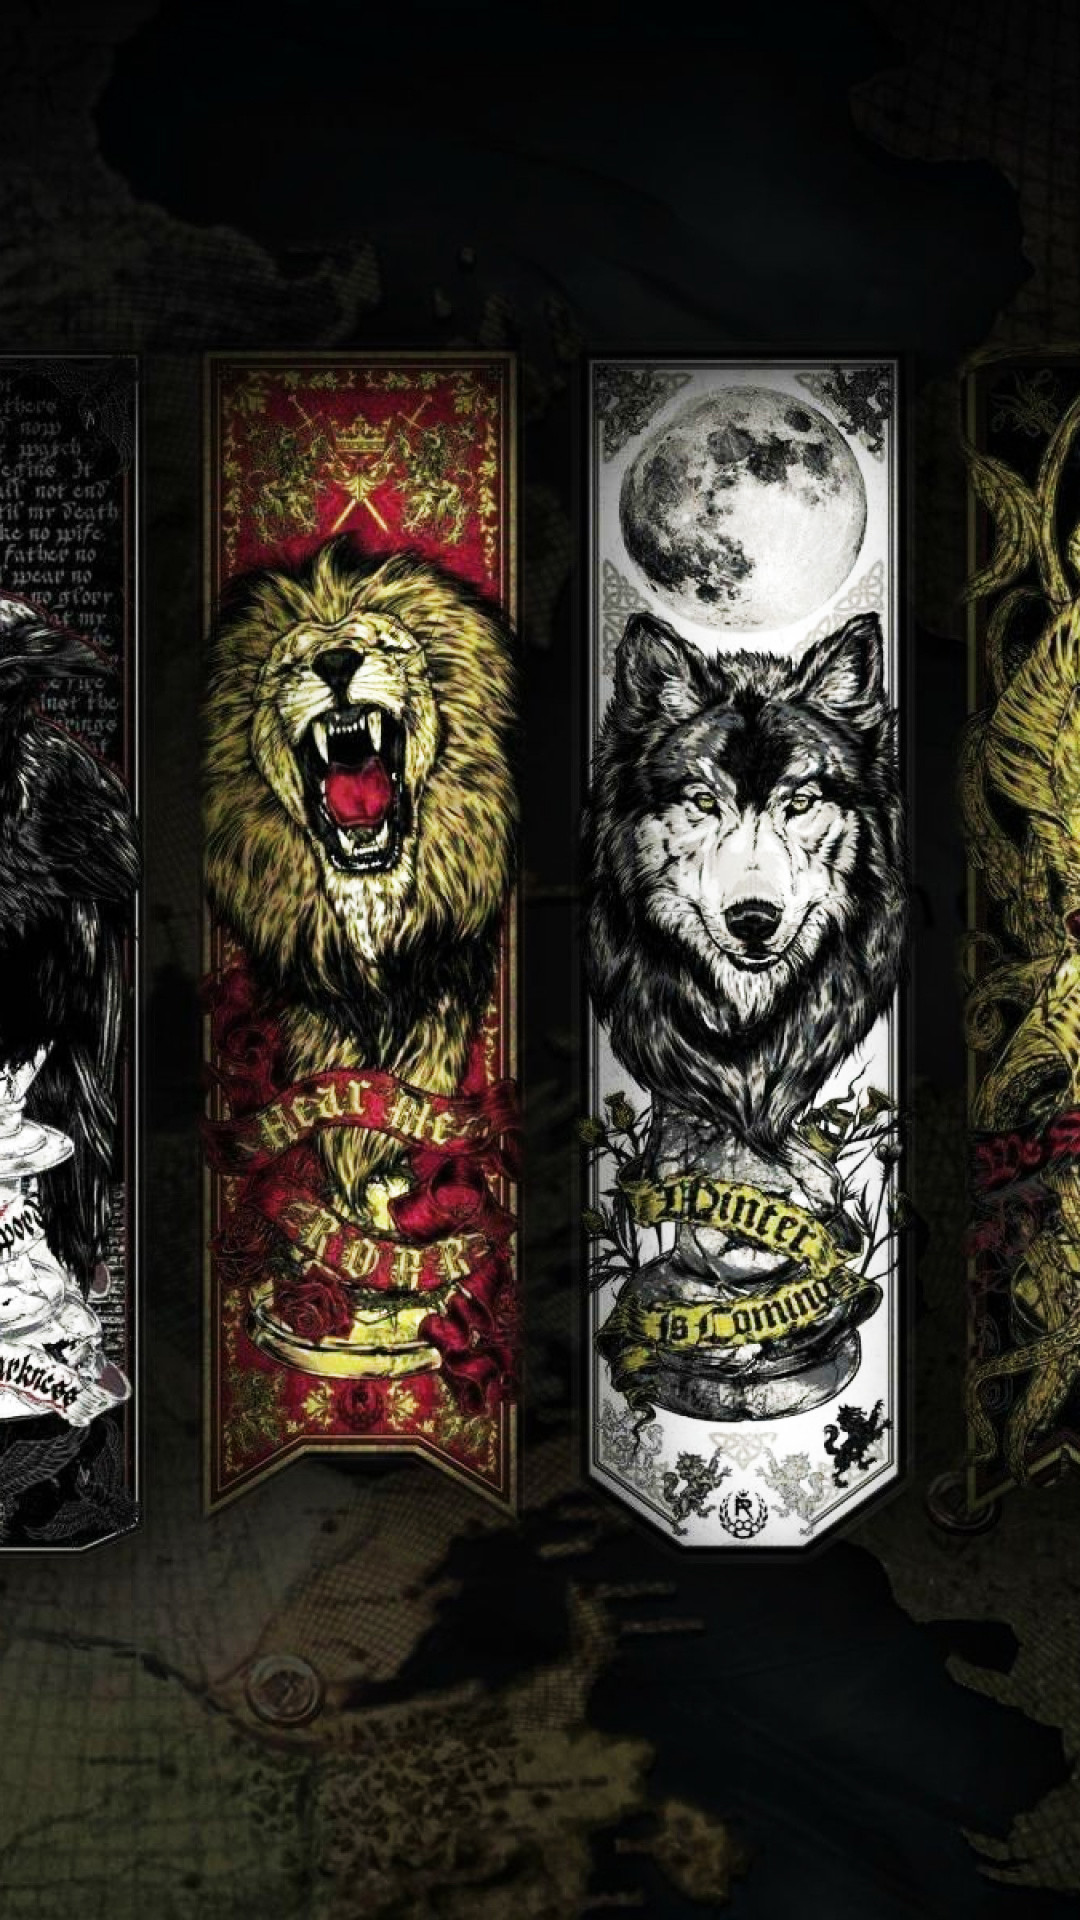 1080x1920 Game Of Thrones Lannister Stark House Wolf Lion Android Wallpaper